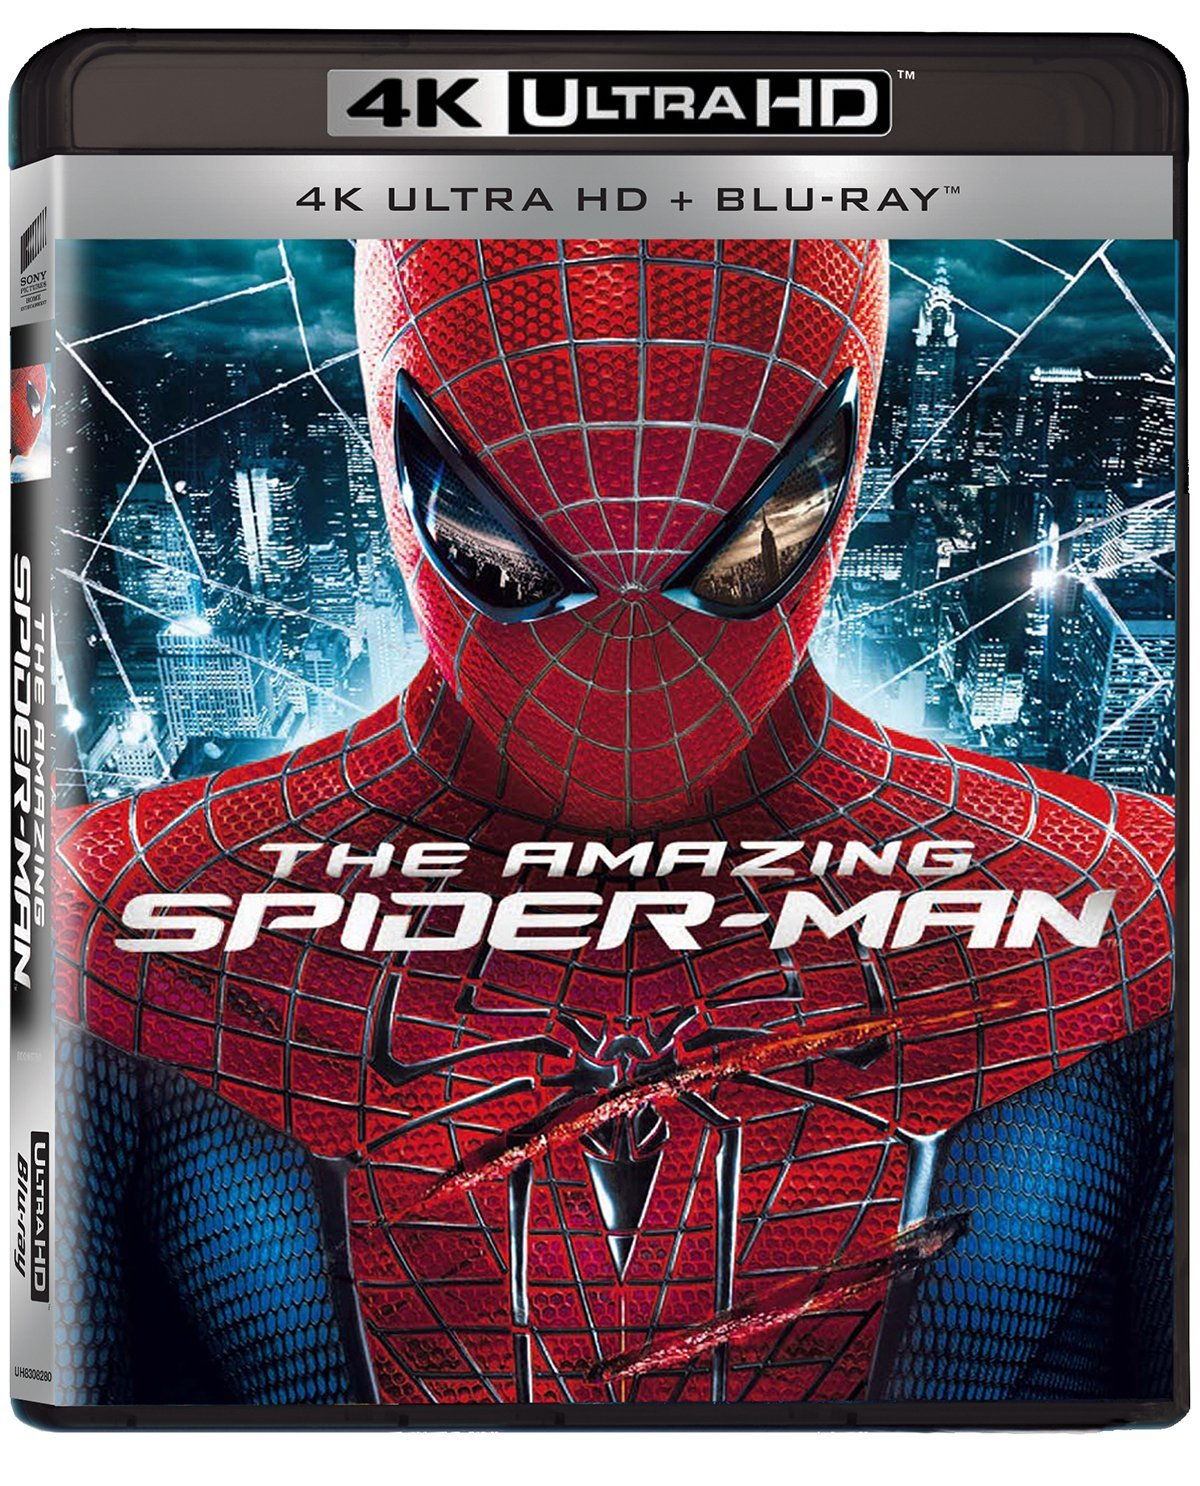 Amazing Spider-man (The) (2012) (Marvel) (4K)